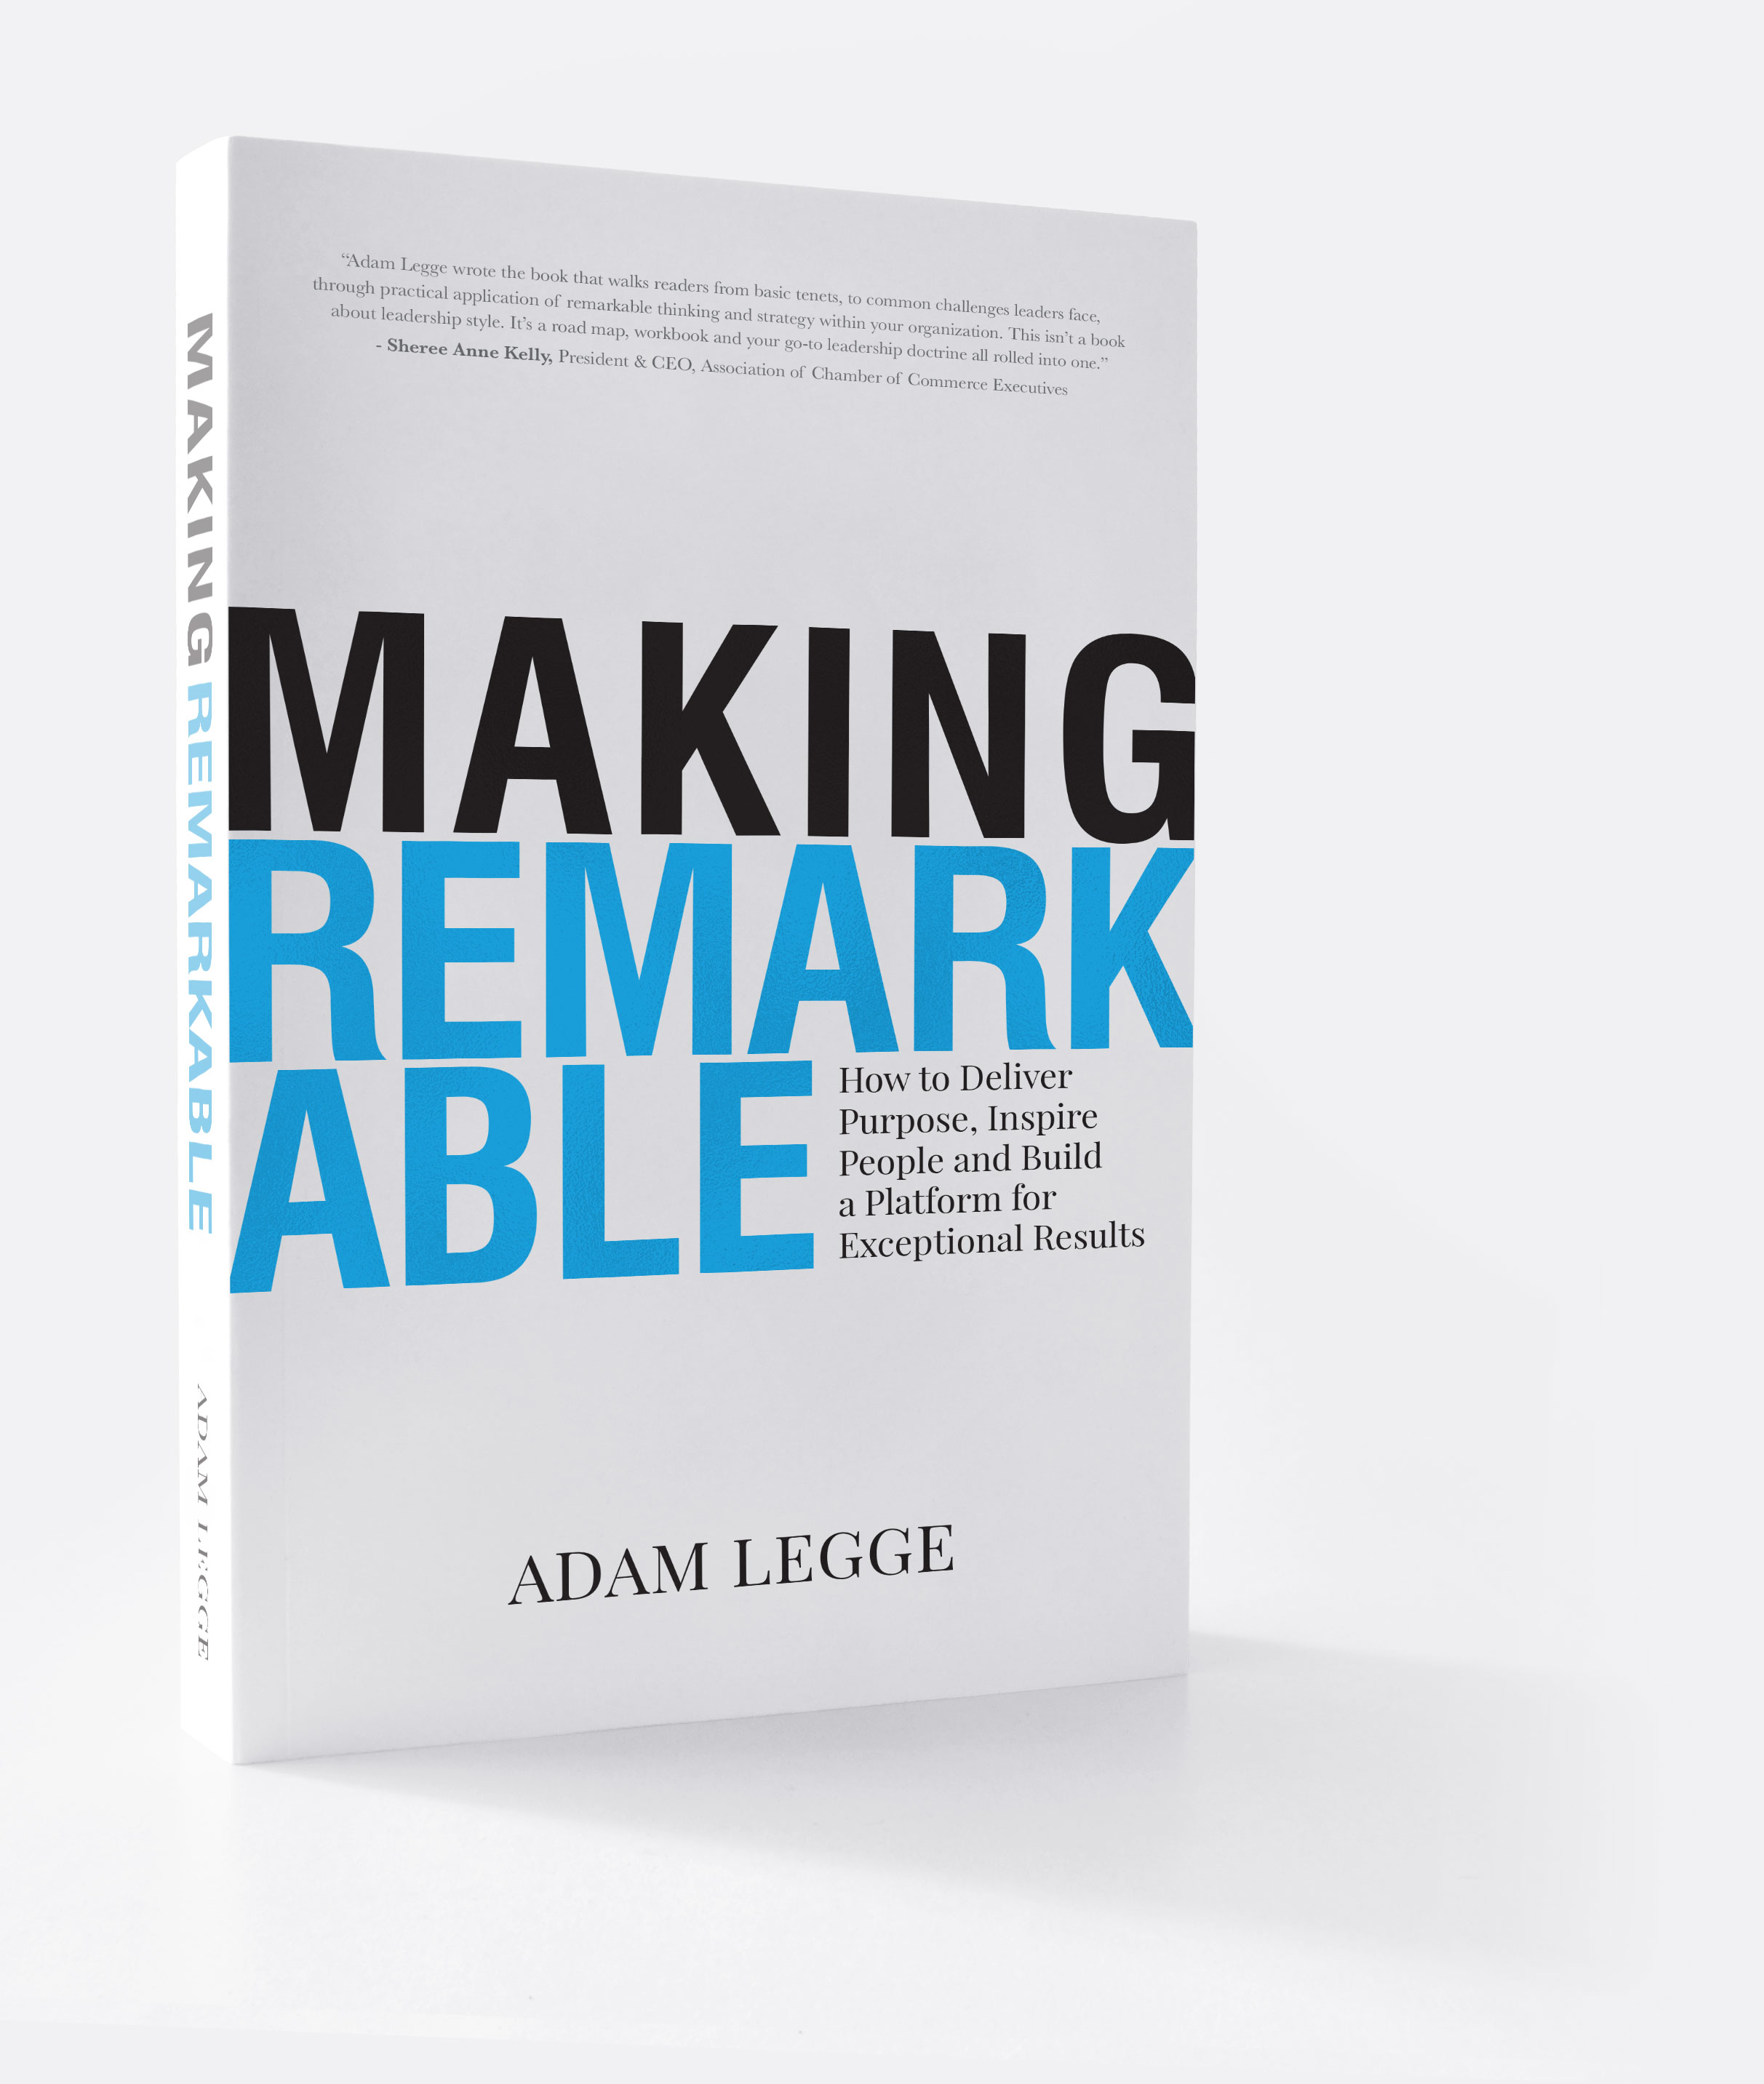 Making Remarkable by Adam Legge